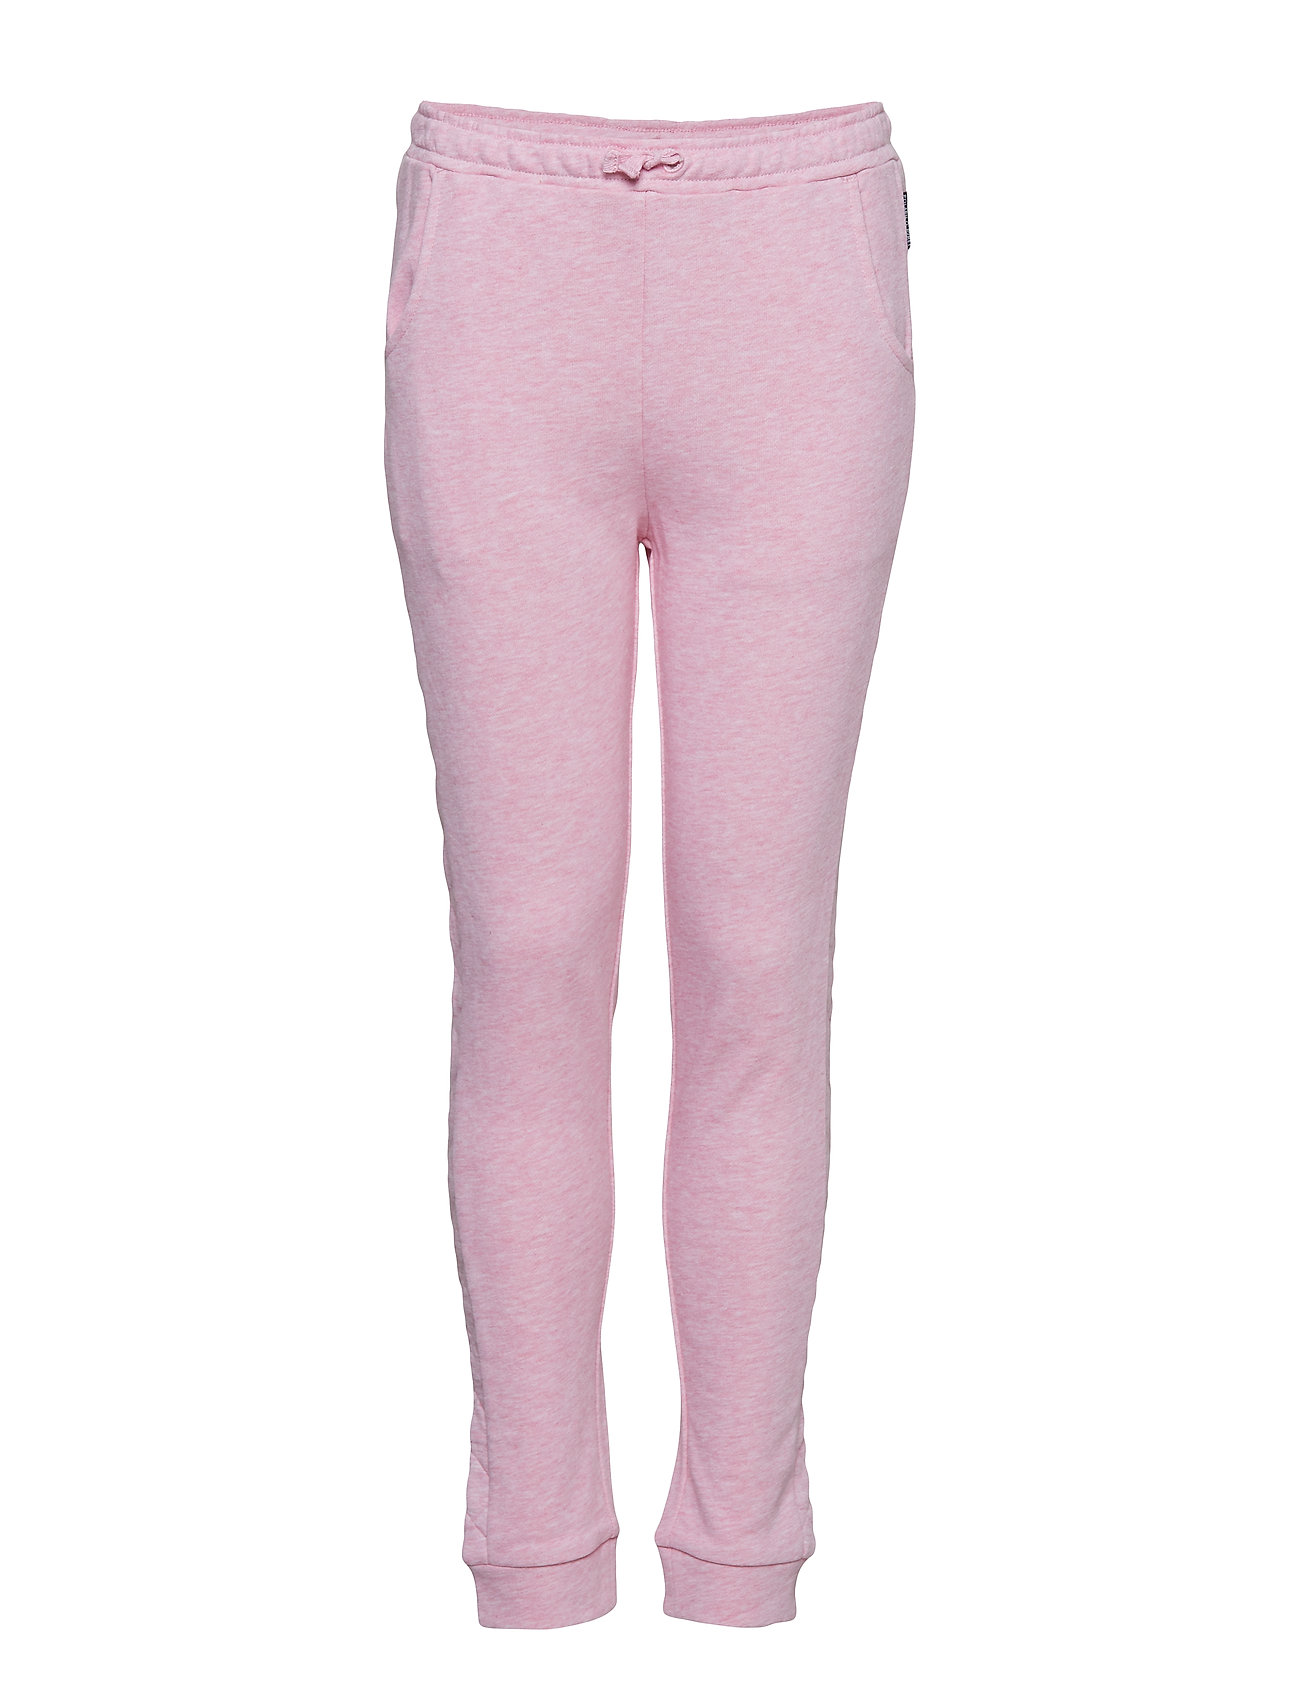 Image of Trousers Jersey Solid School Sweatpants Hyggebukser Lyserød Polarn O. Pyret (3286388731)